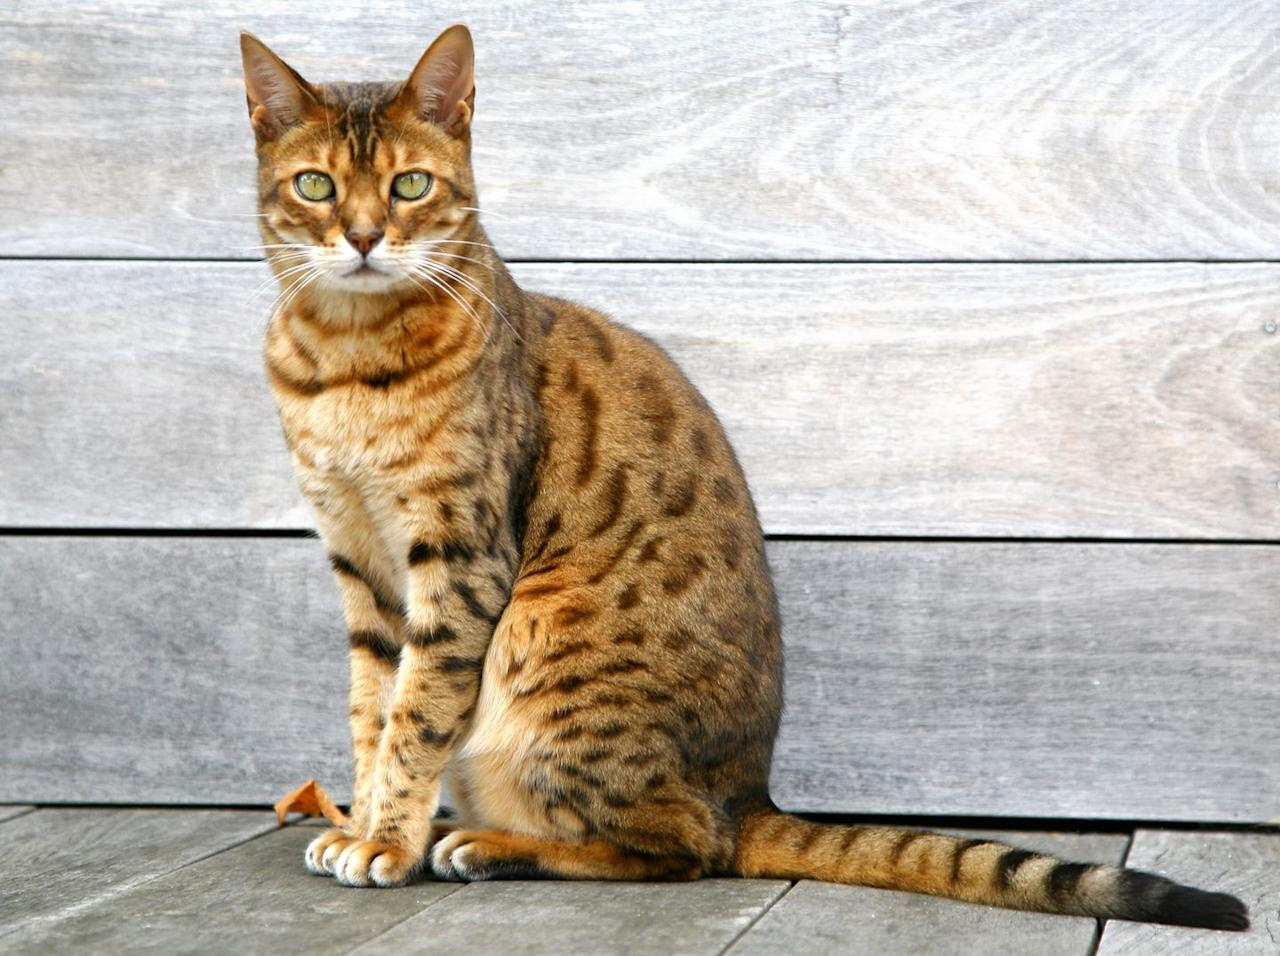 "<p>Created by <a href=""http://www.vetstreet.com/cats/bengal"" target=""_blank"">crossing a small Asian Leopard Cat with a domestic cat</a>, Vet Street notes that the Bengal has the look of a wildcat with the size and tameness of a house cat. This cat is known for its gorgeous marbled or spotted coat, which comes in many colors, as well as its tendency to be highly active and curious. If you're looking for a laid-back lap cat, the Bengal is probably not for you. </p>"